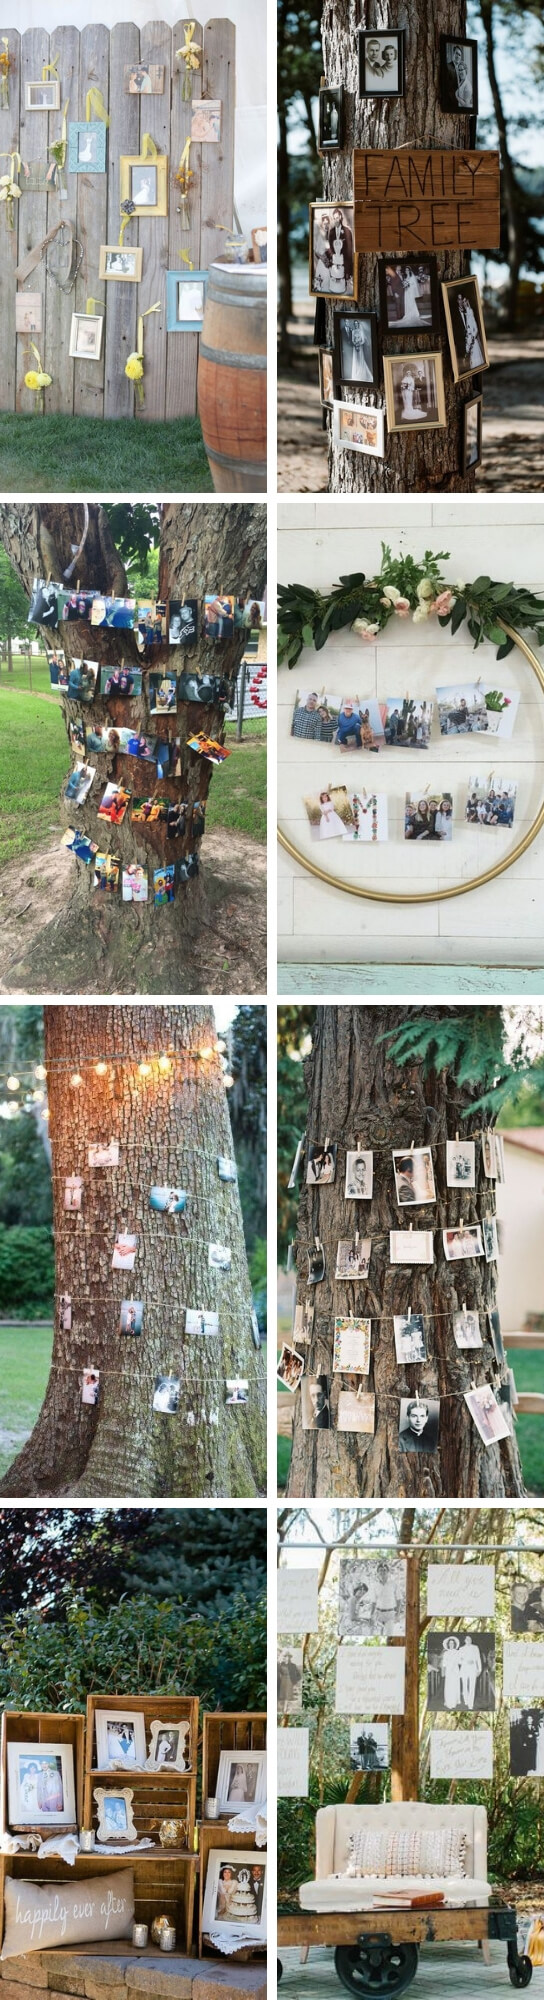 Photo Display Ideas For Wedding | Creative & Rustic Backyard Wedding Ideas For Summer & Fall